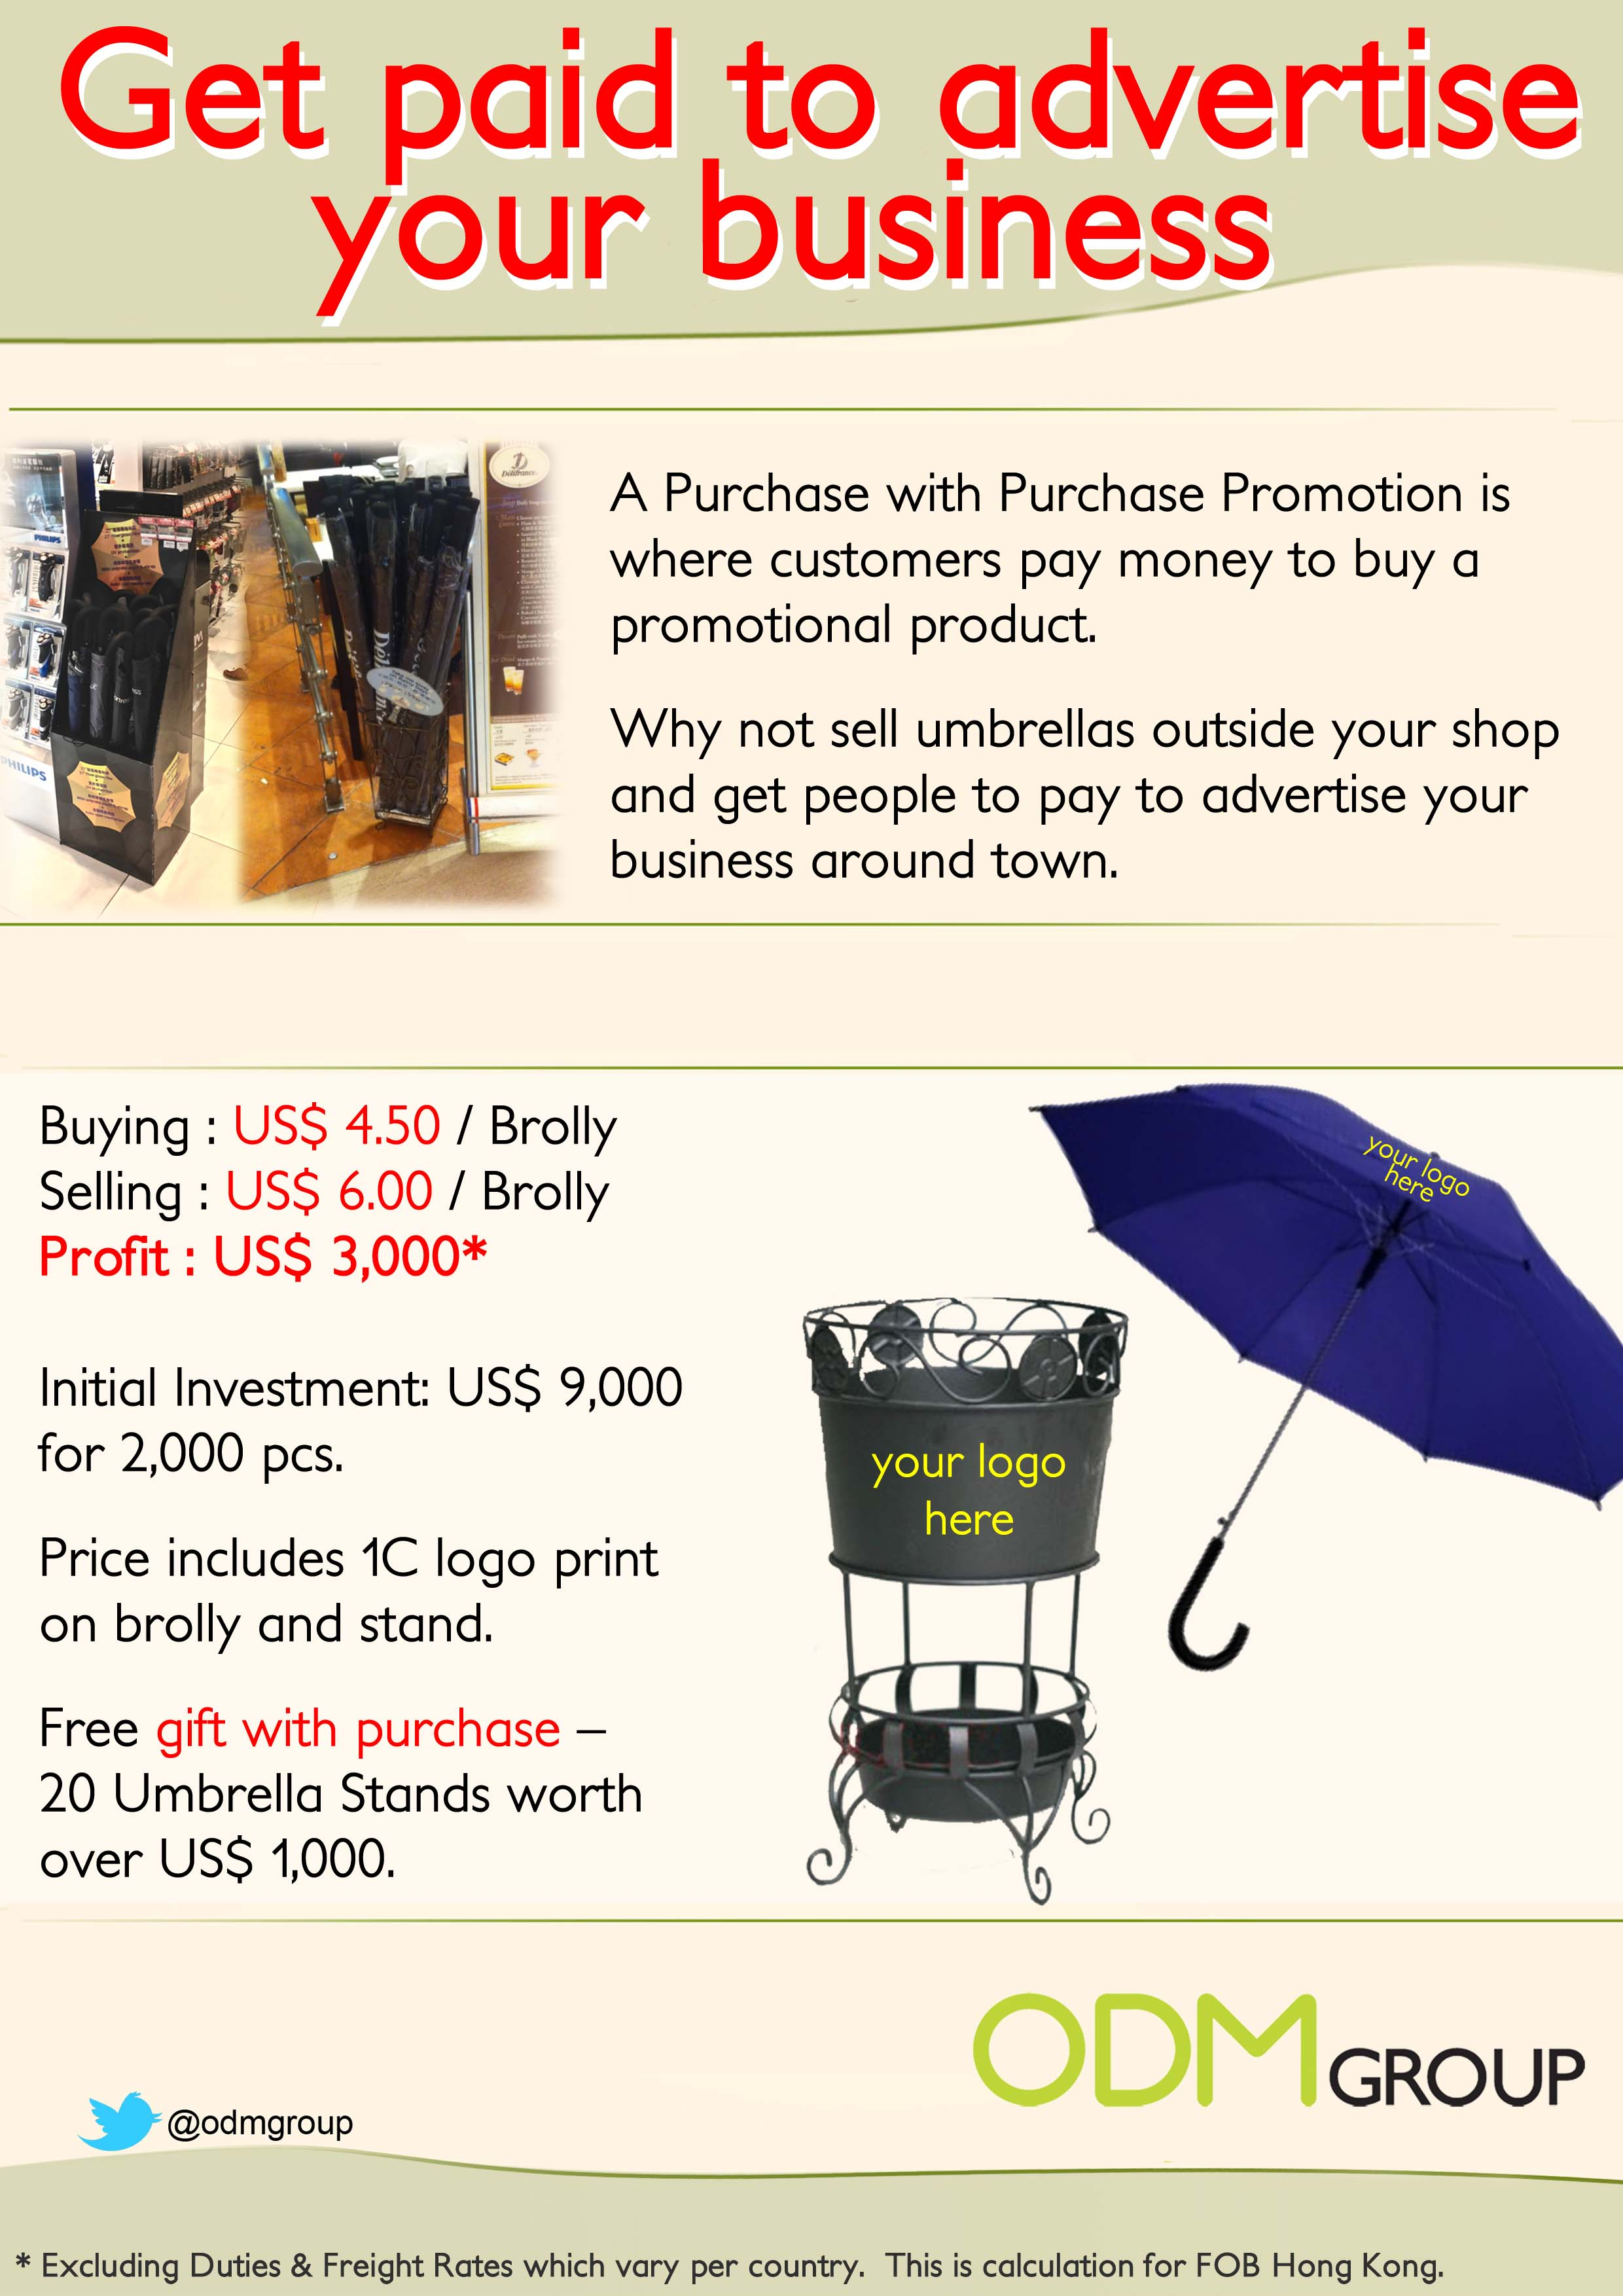 Promotional Umbrellas Summer Offer Summer Offer for Winter Brollys. Get Paid to Market your Business.